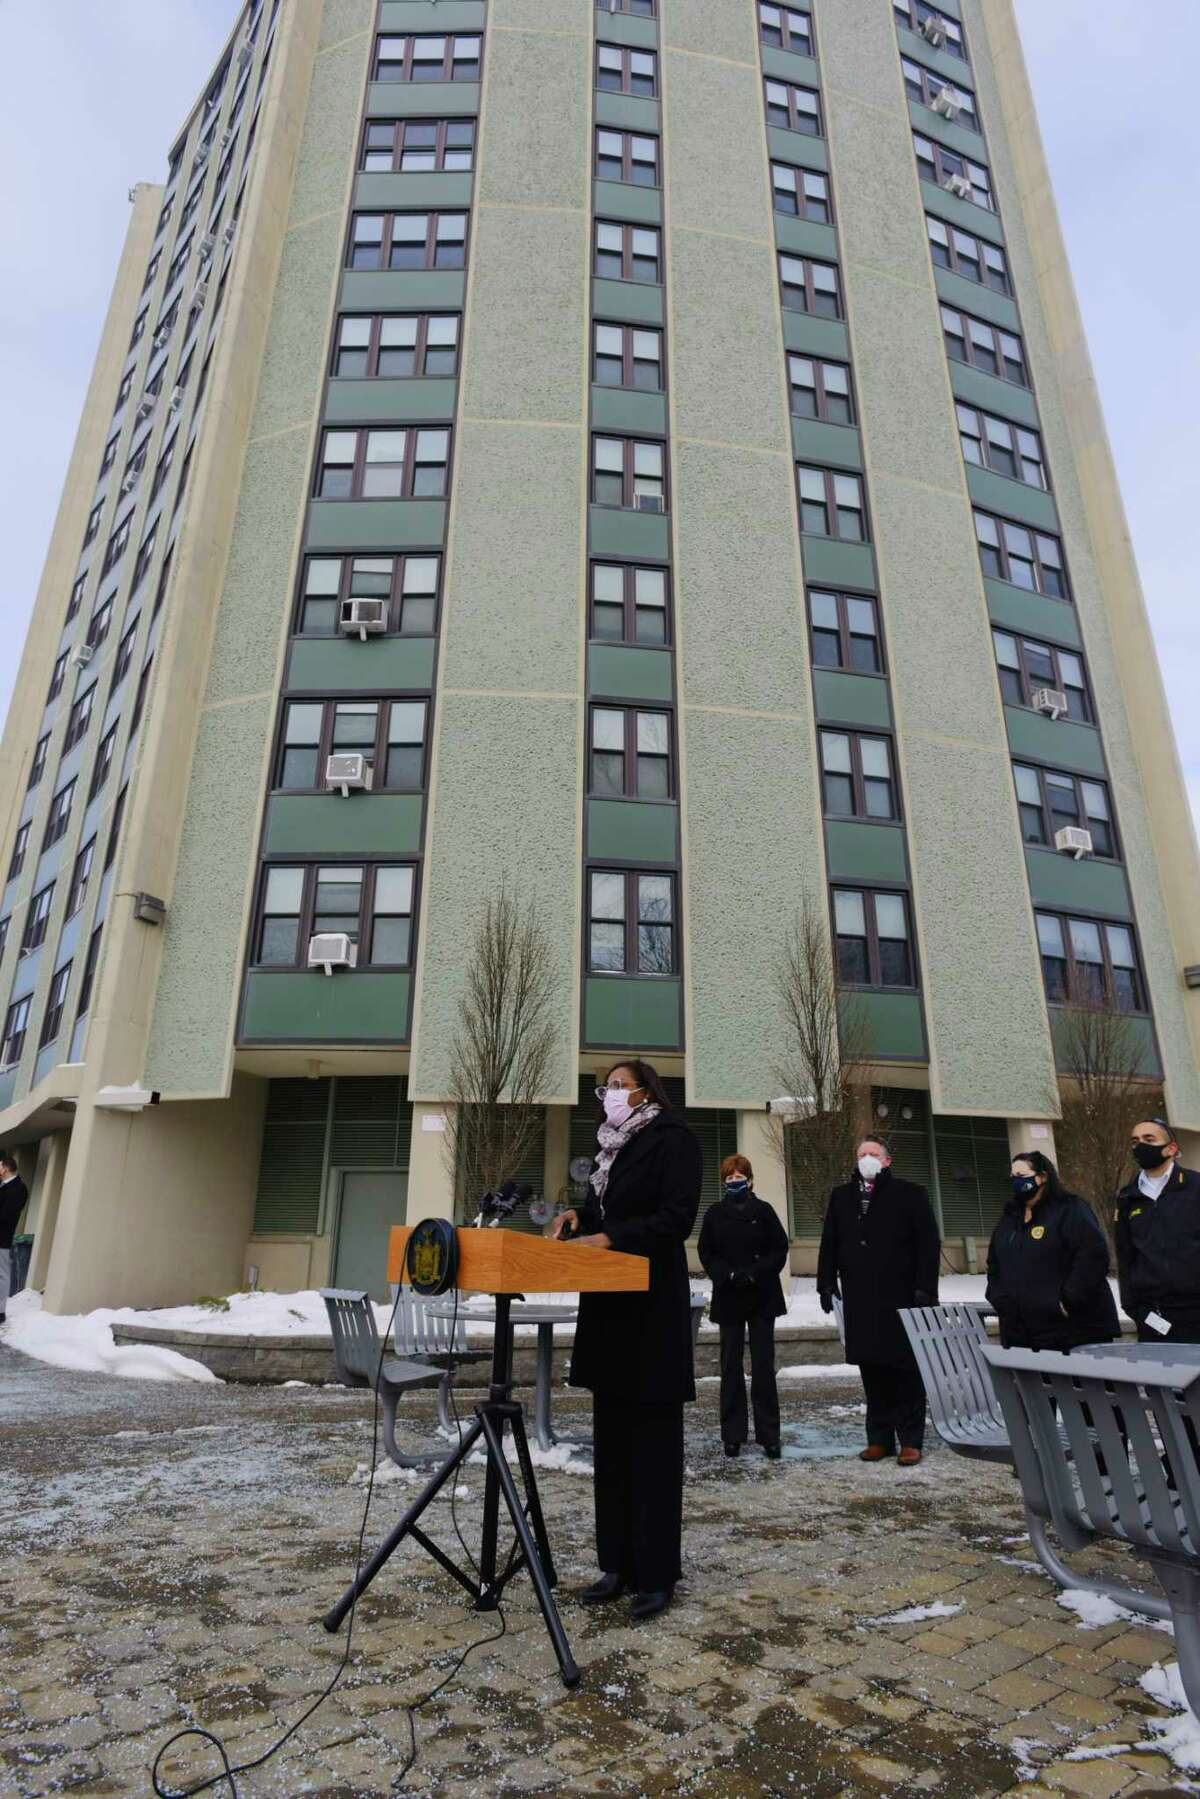 Chiquita Darbeau, Albany Housing Authority executive director, speaks at a press conference outside the Westview Homes where Mohawk Ambulance Services was running a community based pop up vaccination site on Thursday, Feb. 4, 2021, in Albany, N.Y. (Paul Buckowski/Times Union)